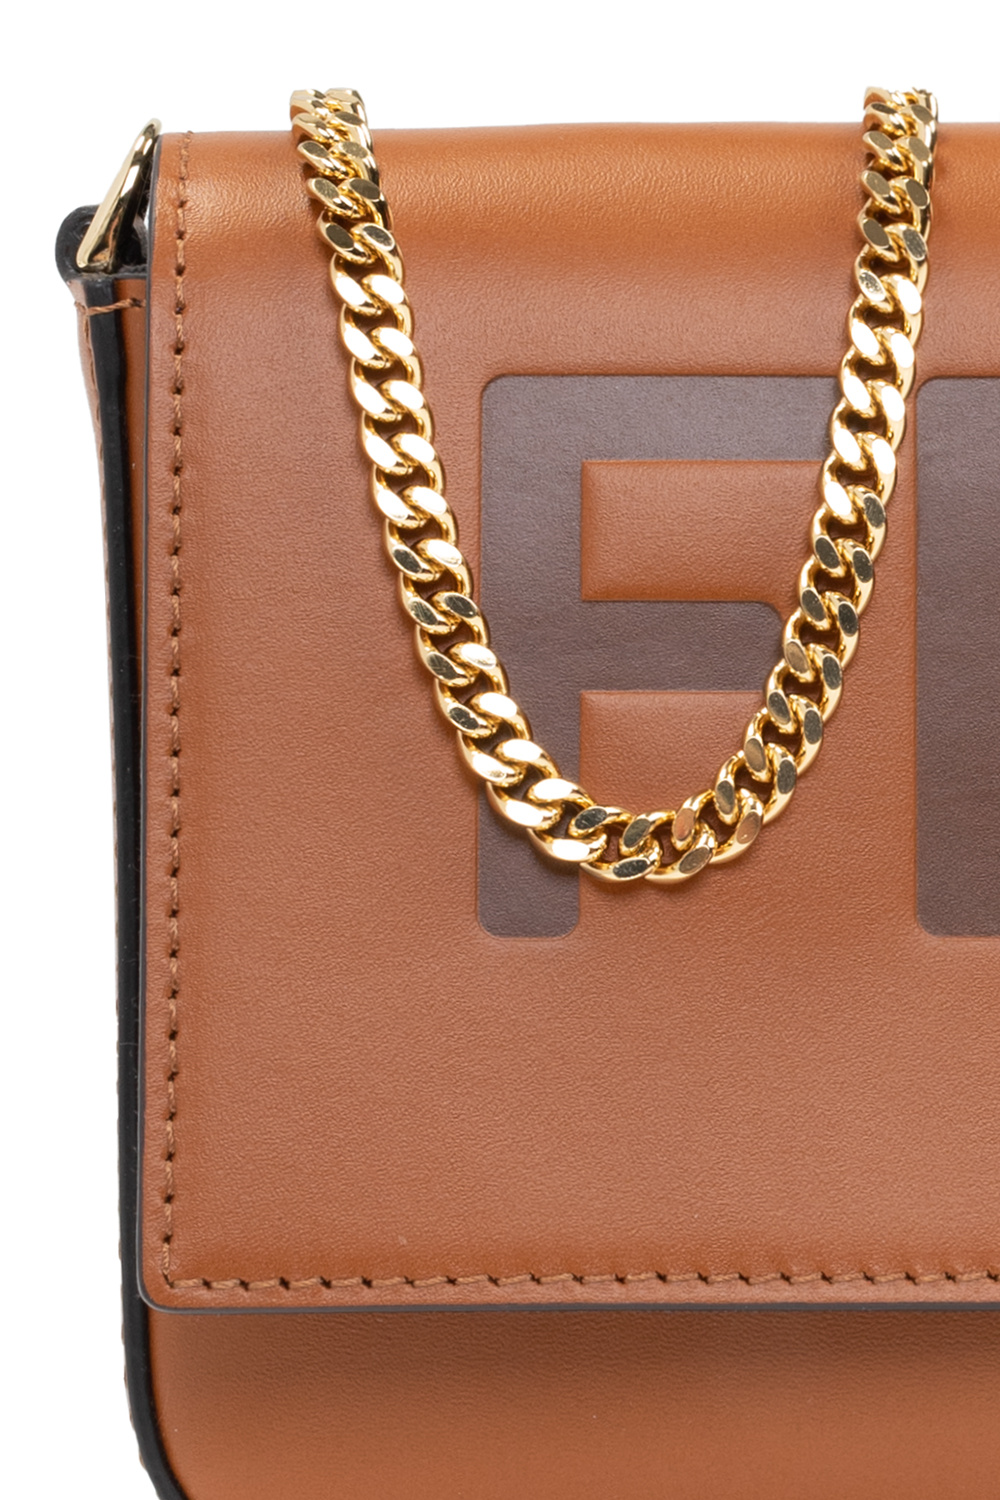 Fendi Wallet with chain